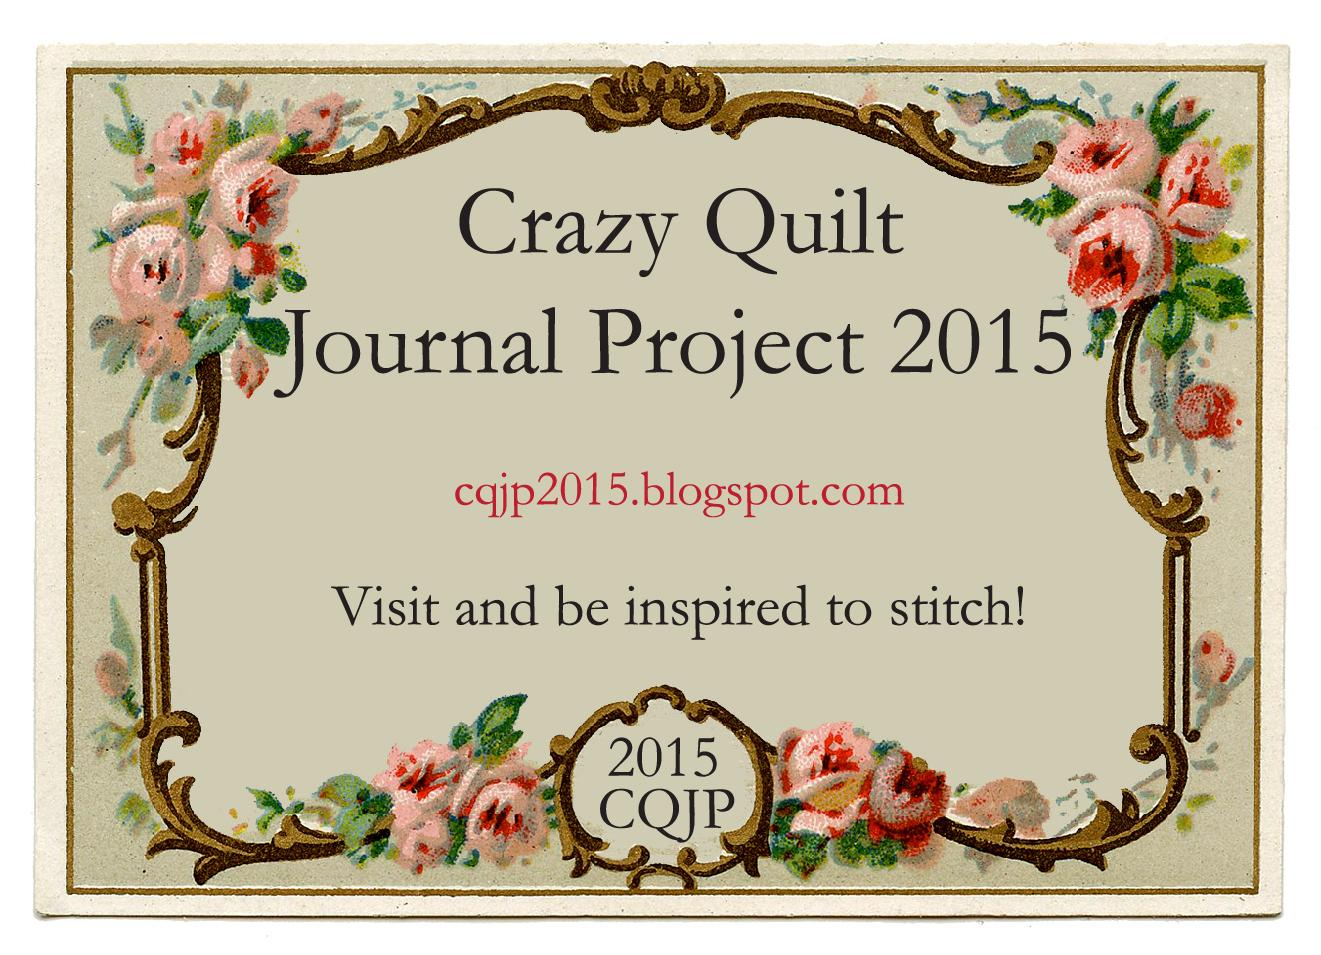 Crazy Quilt Journal Project 2015